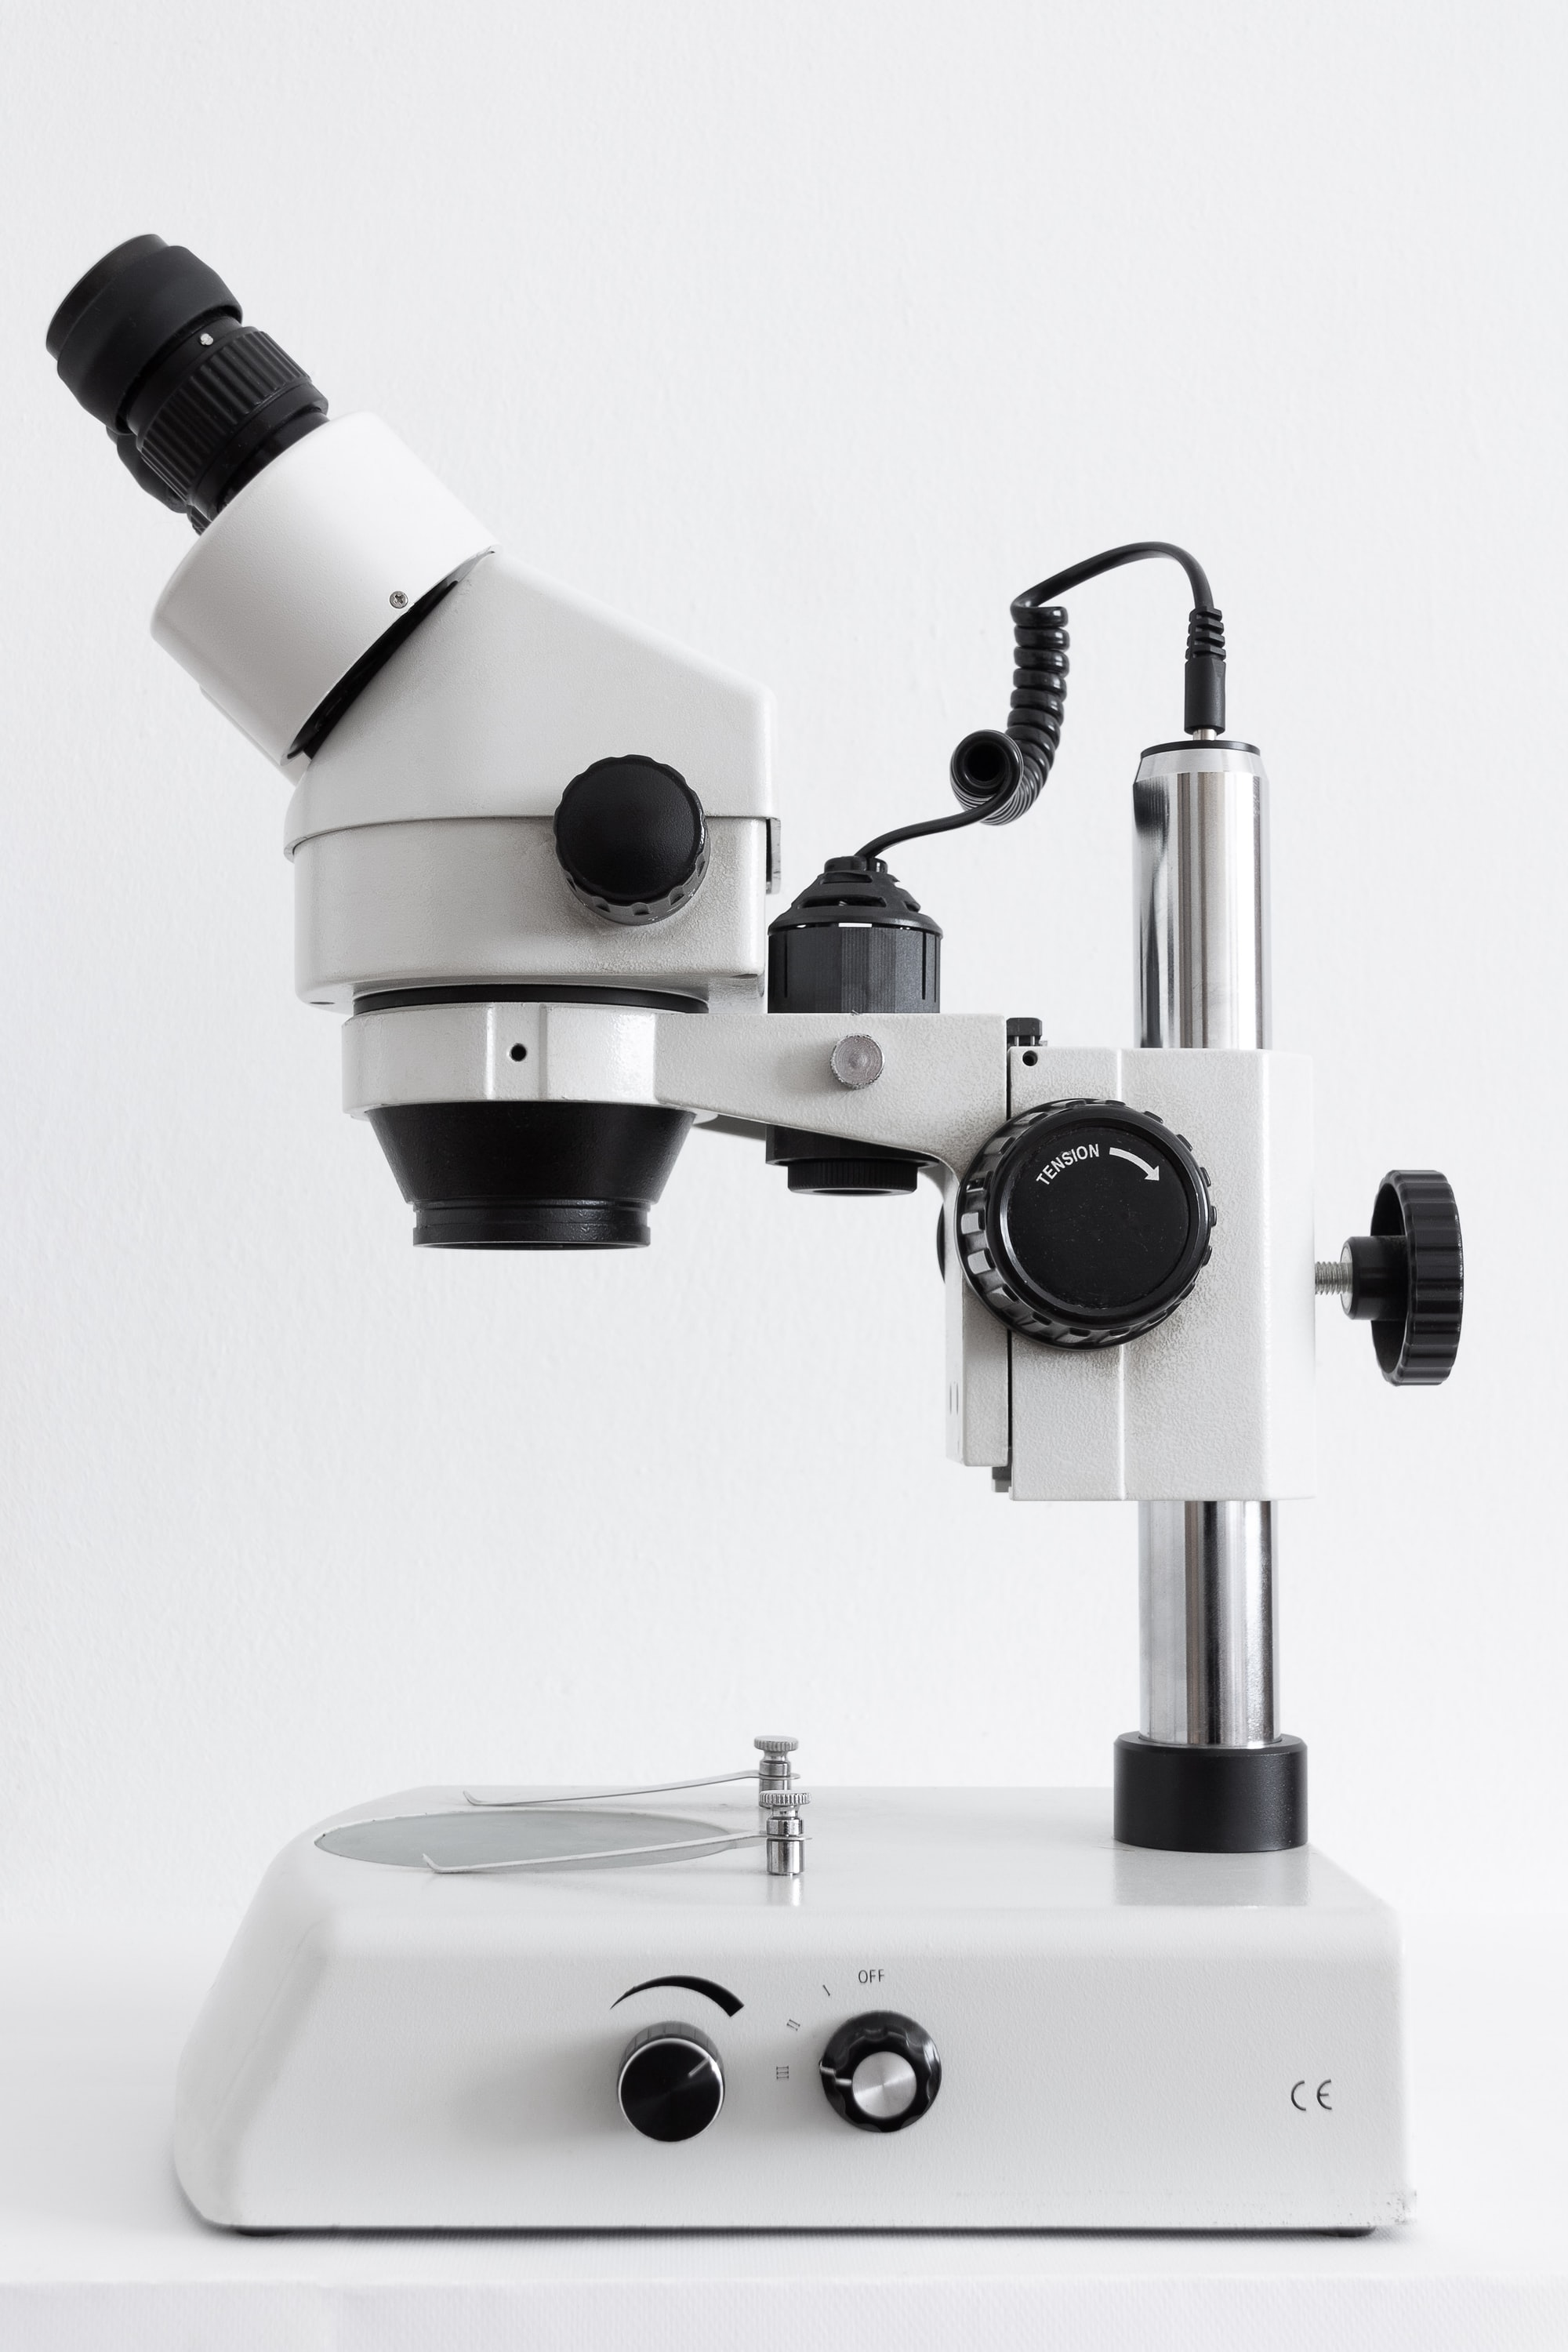 The AI Microscope That Detects Cancer Within Minutes